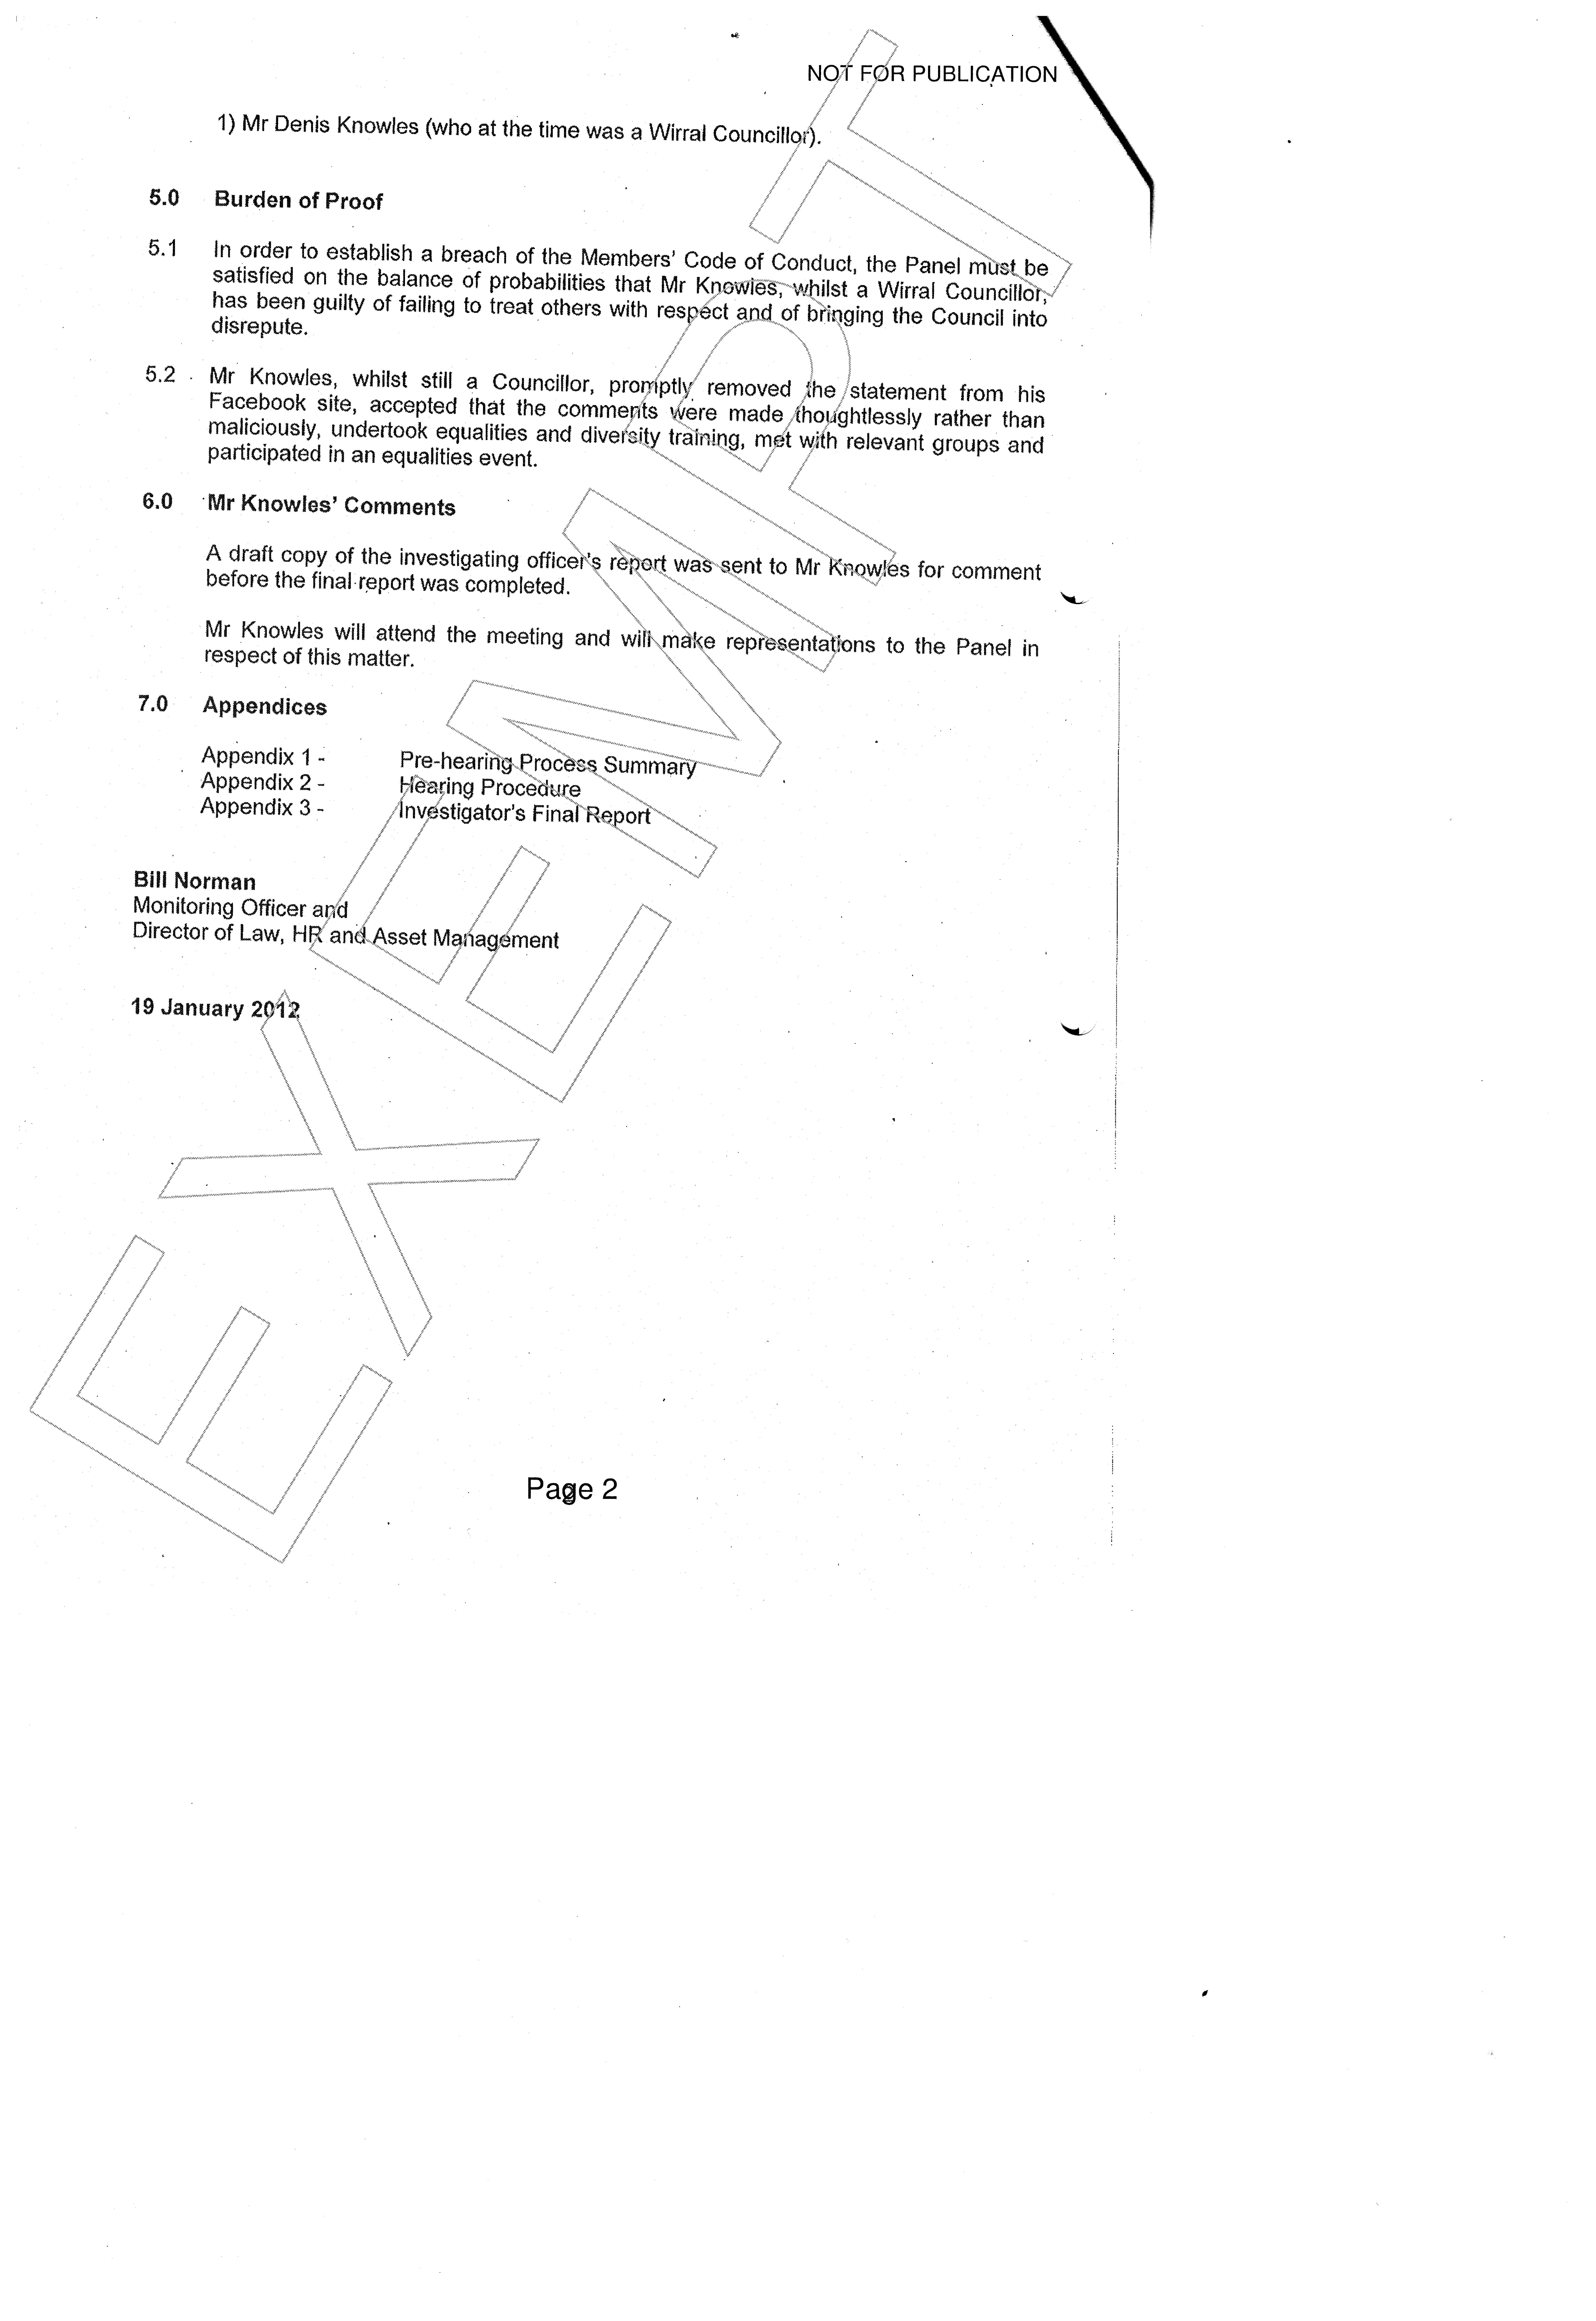 Agenda Item 3 Report of the Monitoring Officer Page 2 of 7